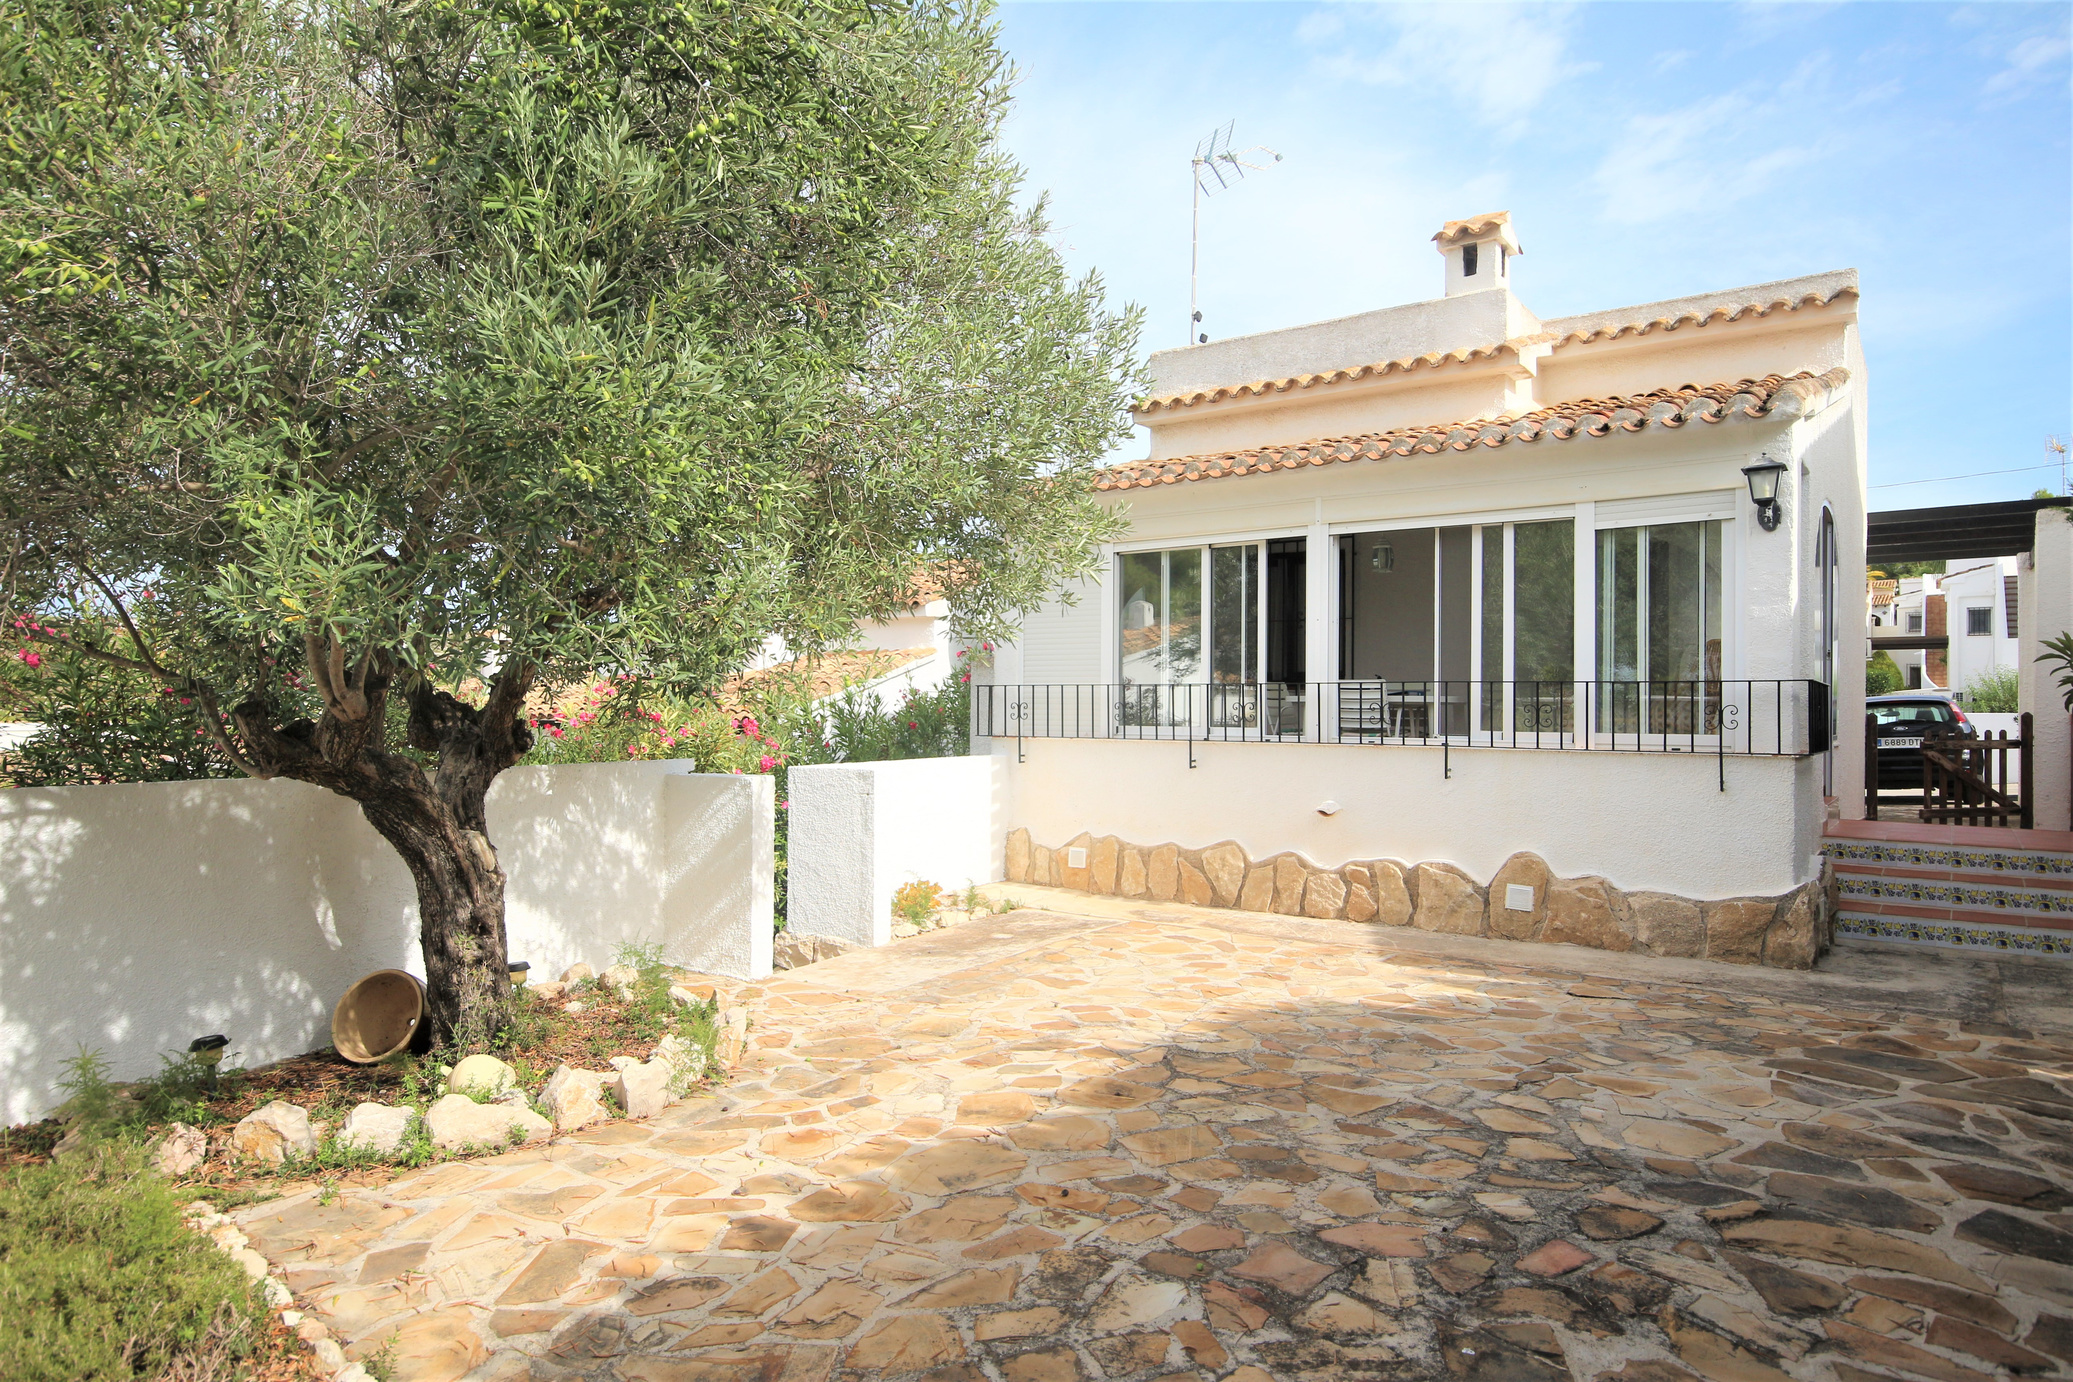 Detached two bedroom, two bathroom villa, Villotel, Moraira